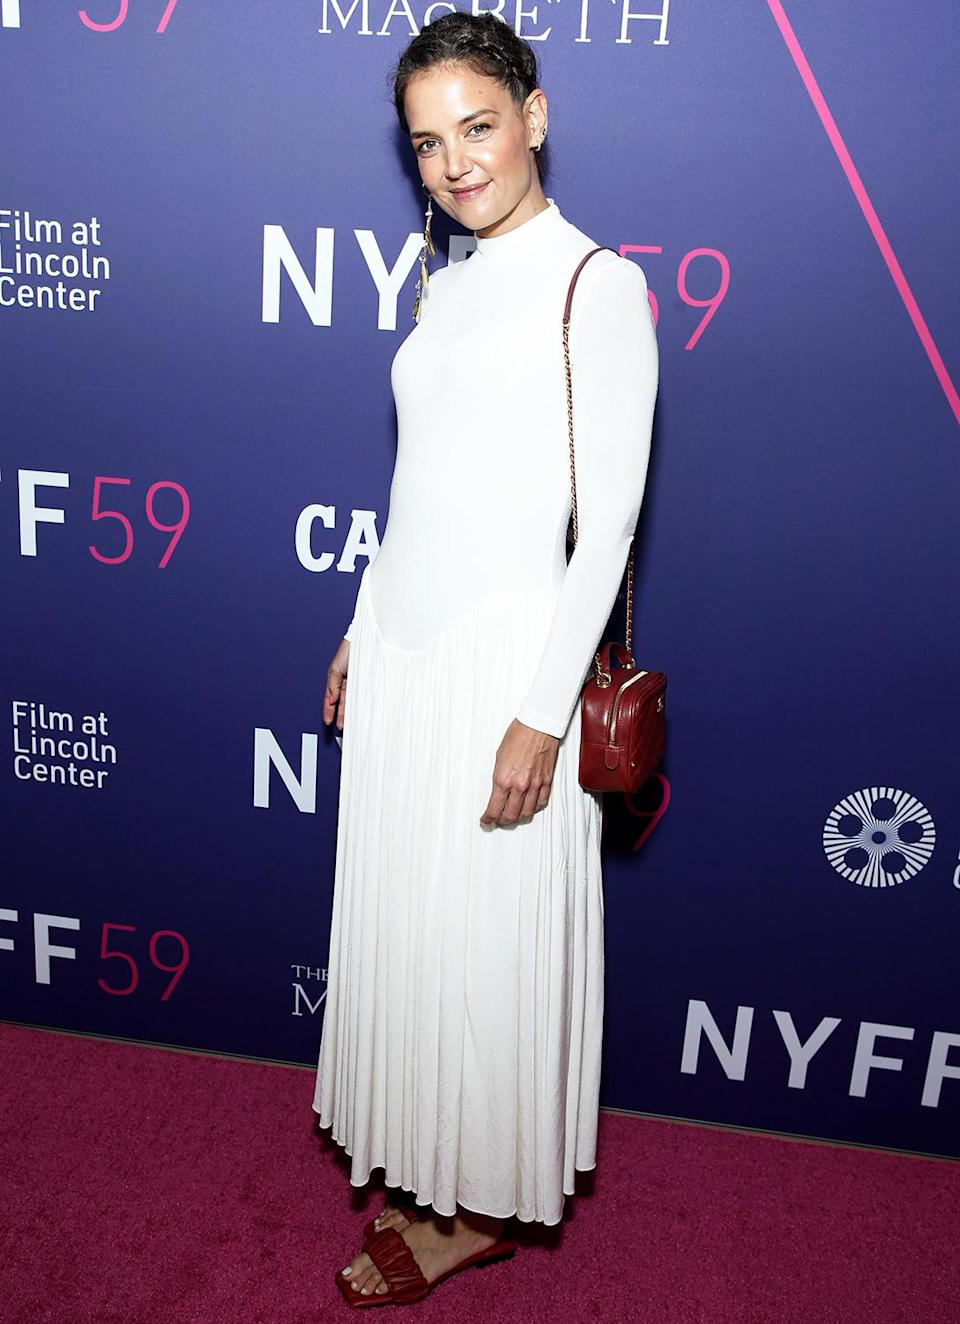 <p>Katie Holmes poses on the red carpet at the opening night screening of <em>The Tragedy of Macbeth </em>on Sept. 24 during the New York Film Festival.</p>